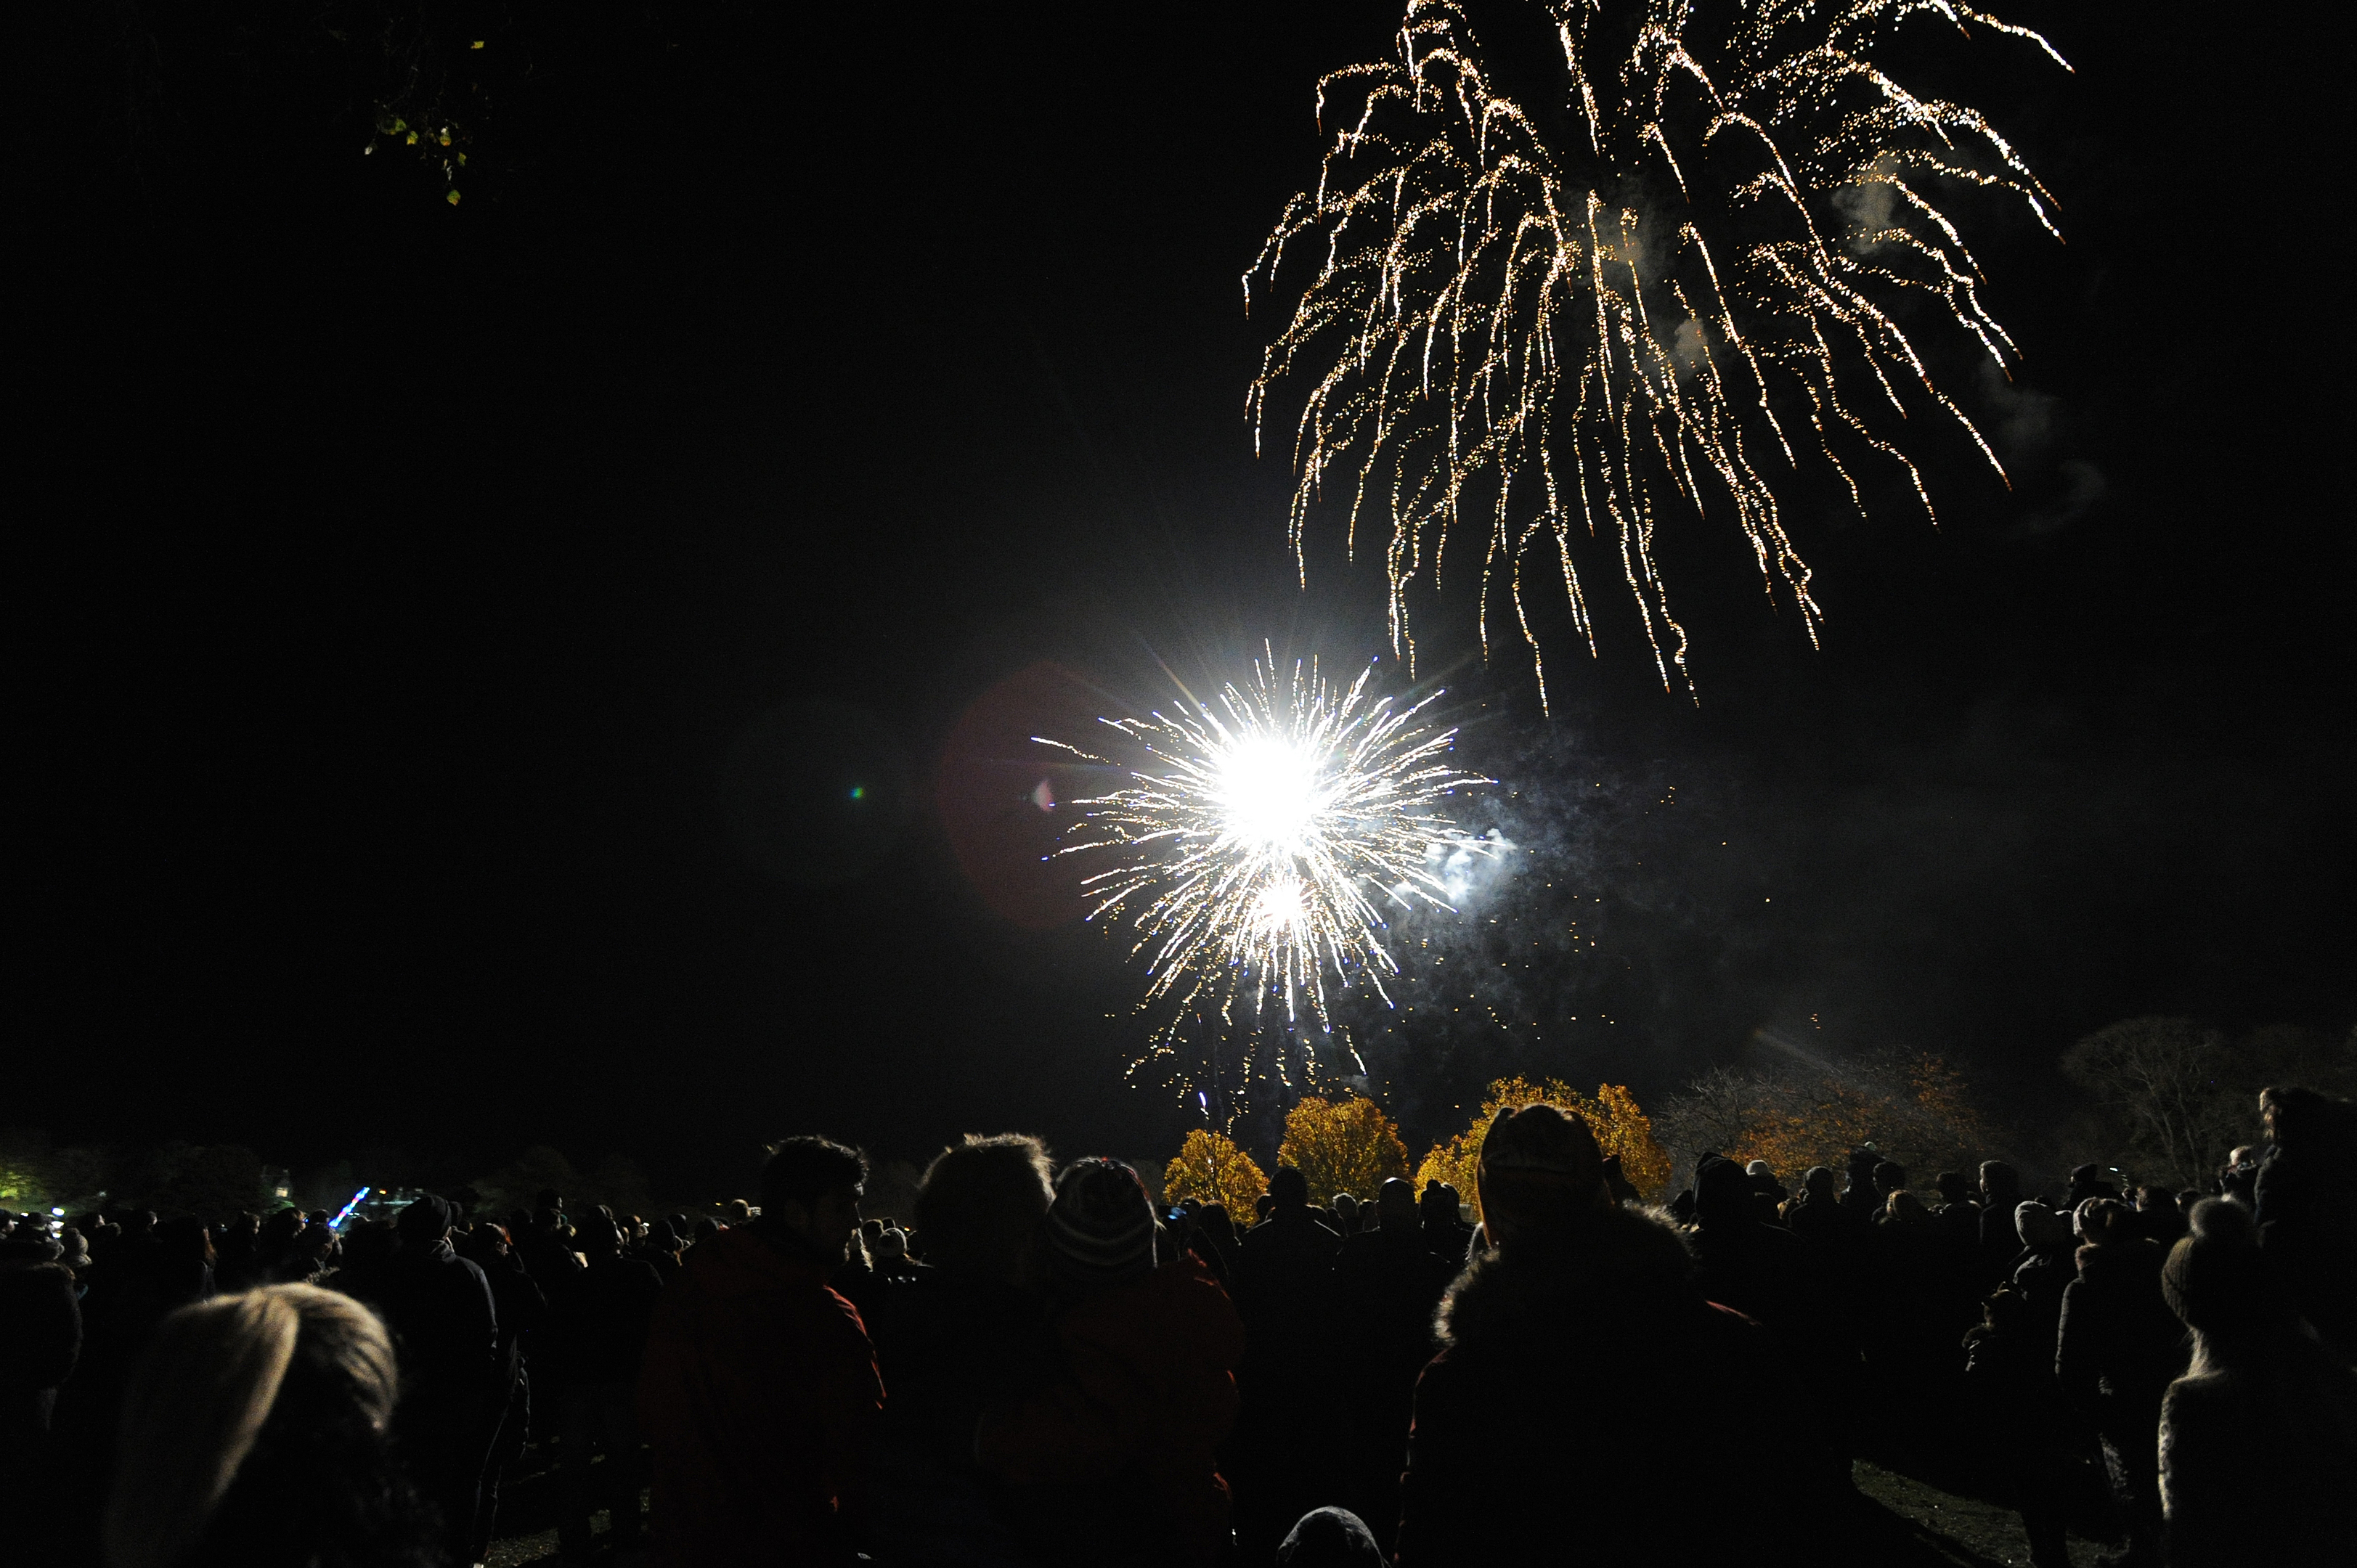 The fireworks display at Baxter Park.